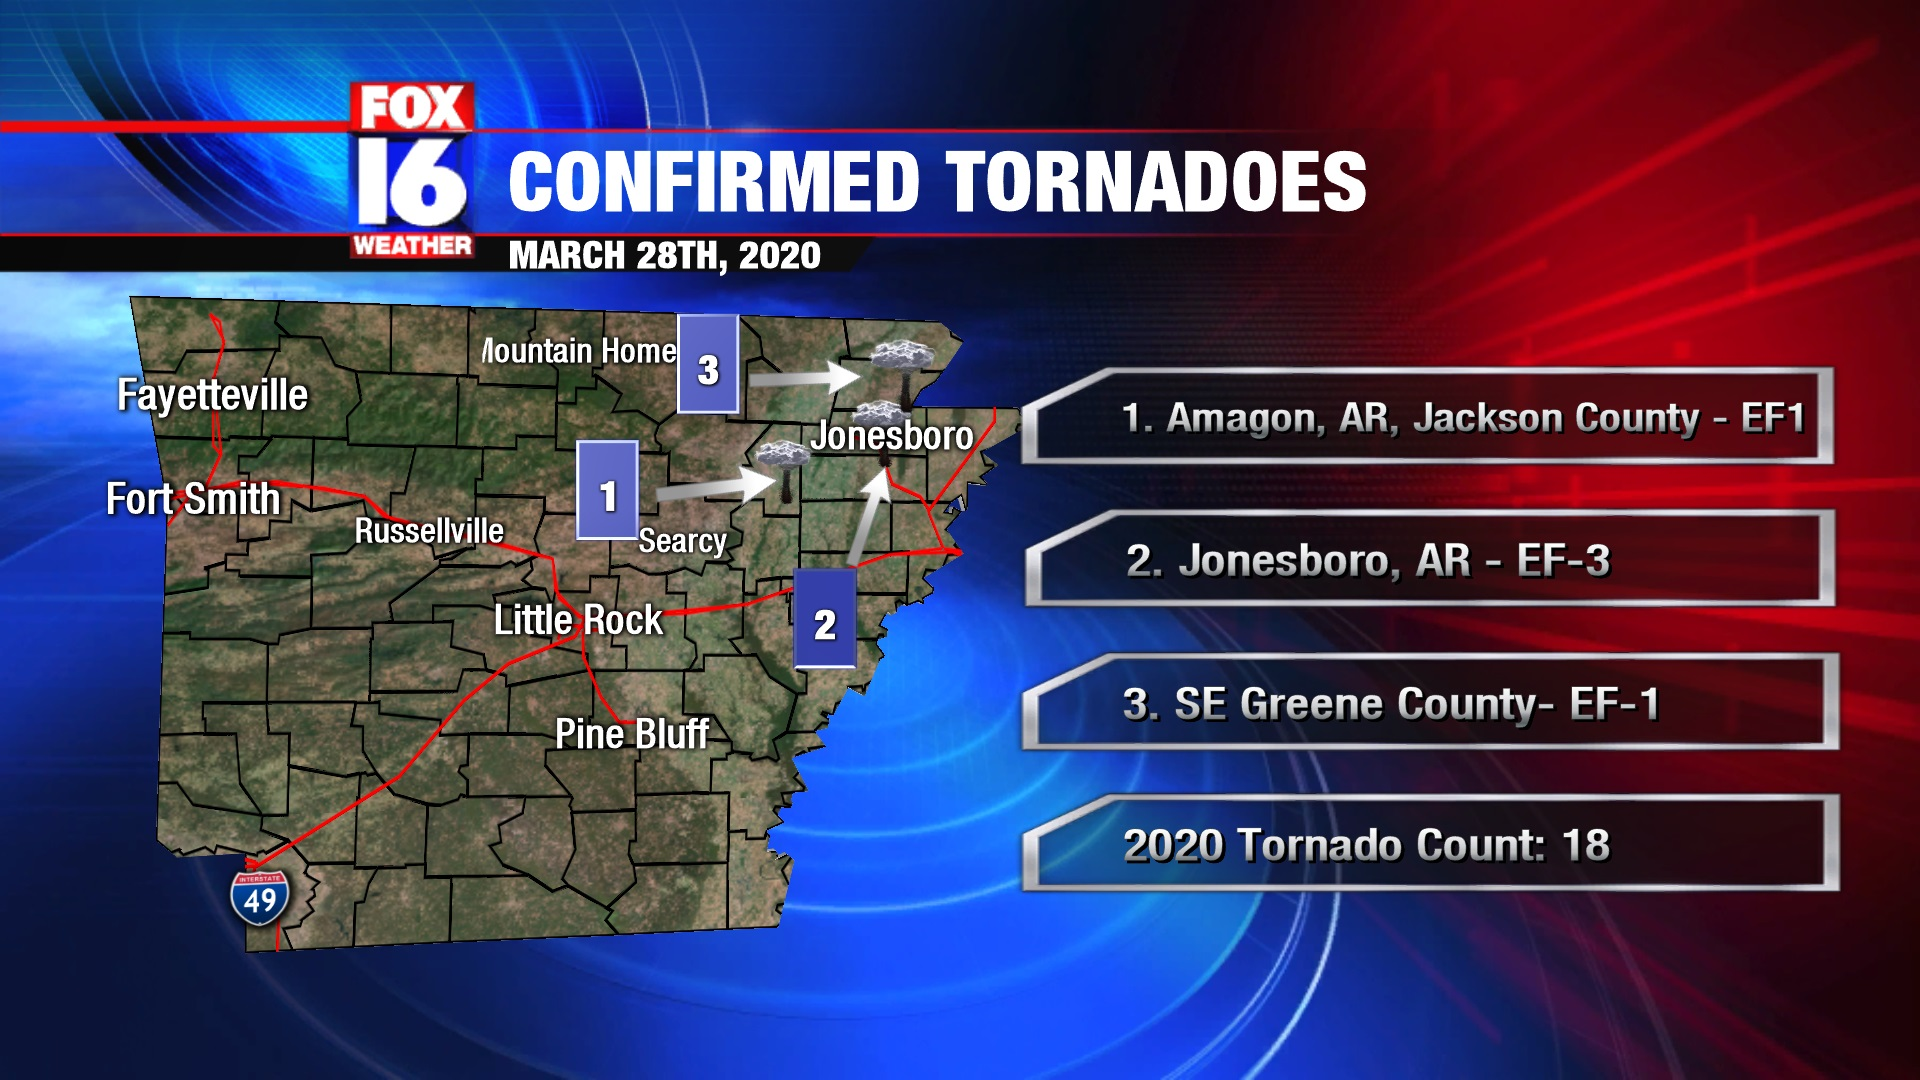 Ef 3 Tornado Confirmed Along With Two Others From March 28th Severe Event